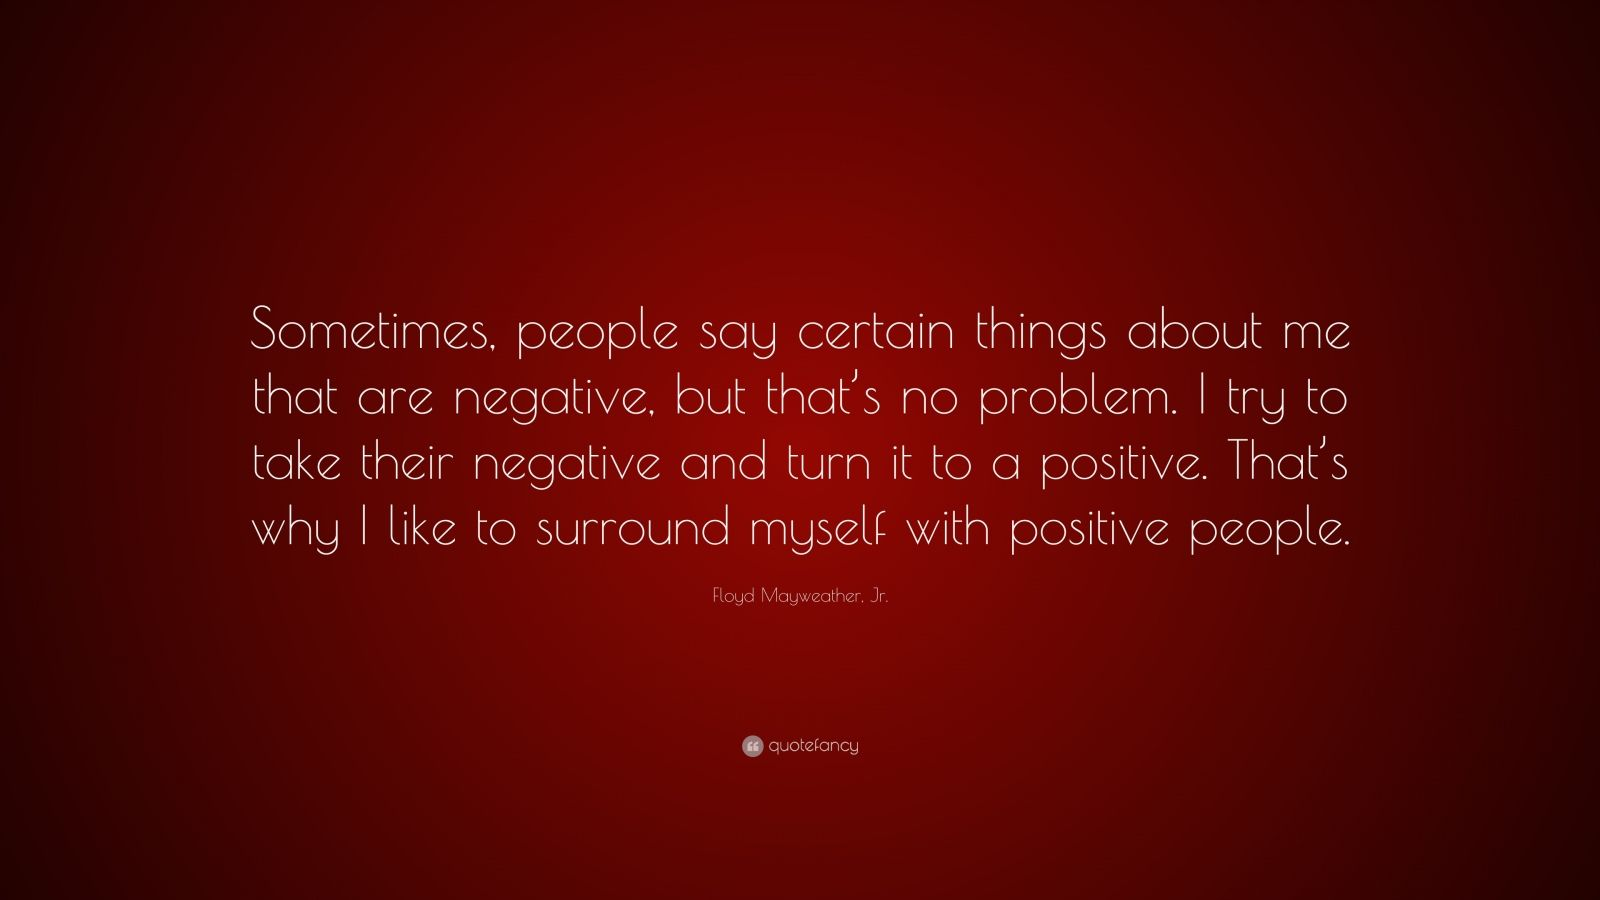 "Floyd Mayweather, Jr. Quote: ""Sometimes, people say certain things about me that are negative, but that's no problem. I try to take their negative and turn it to a positive. That's why I like to surround myself with positive people."""